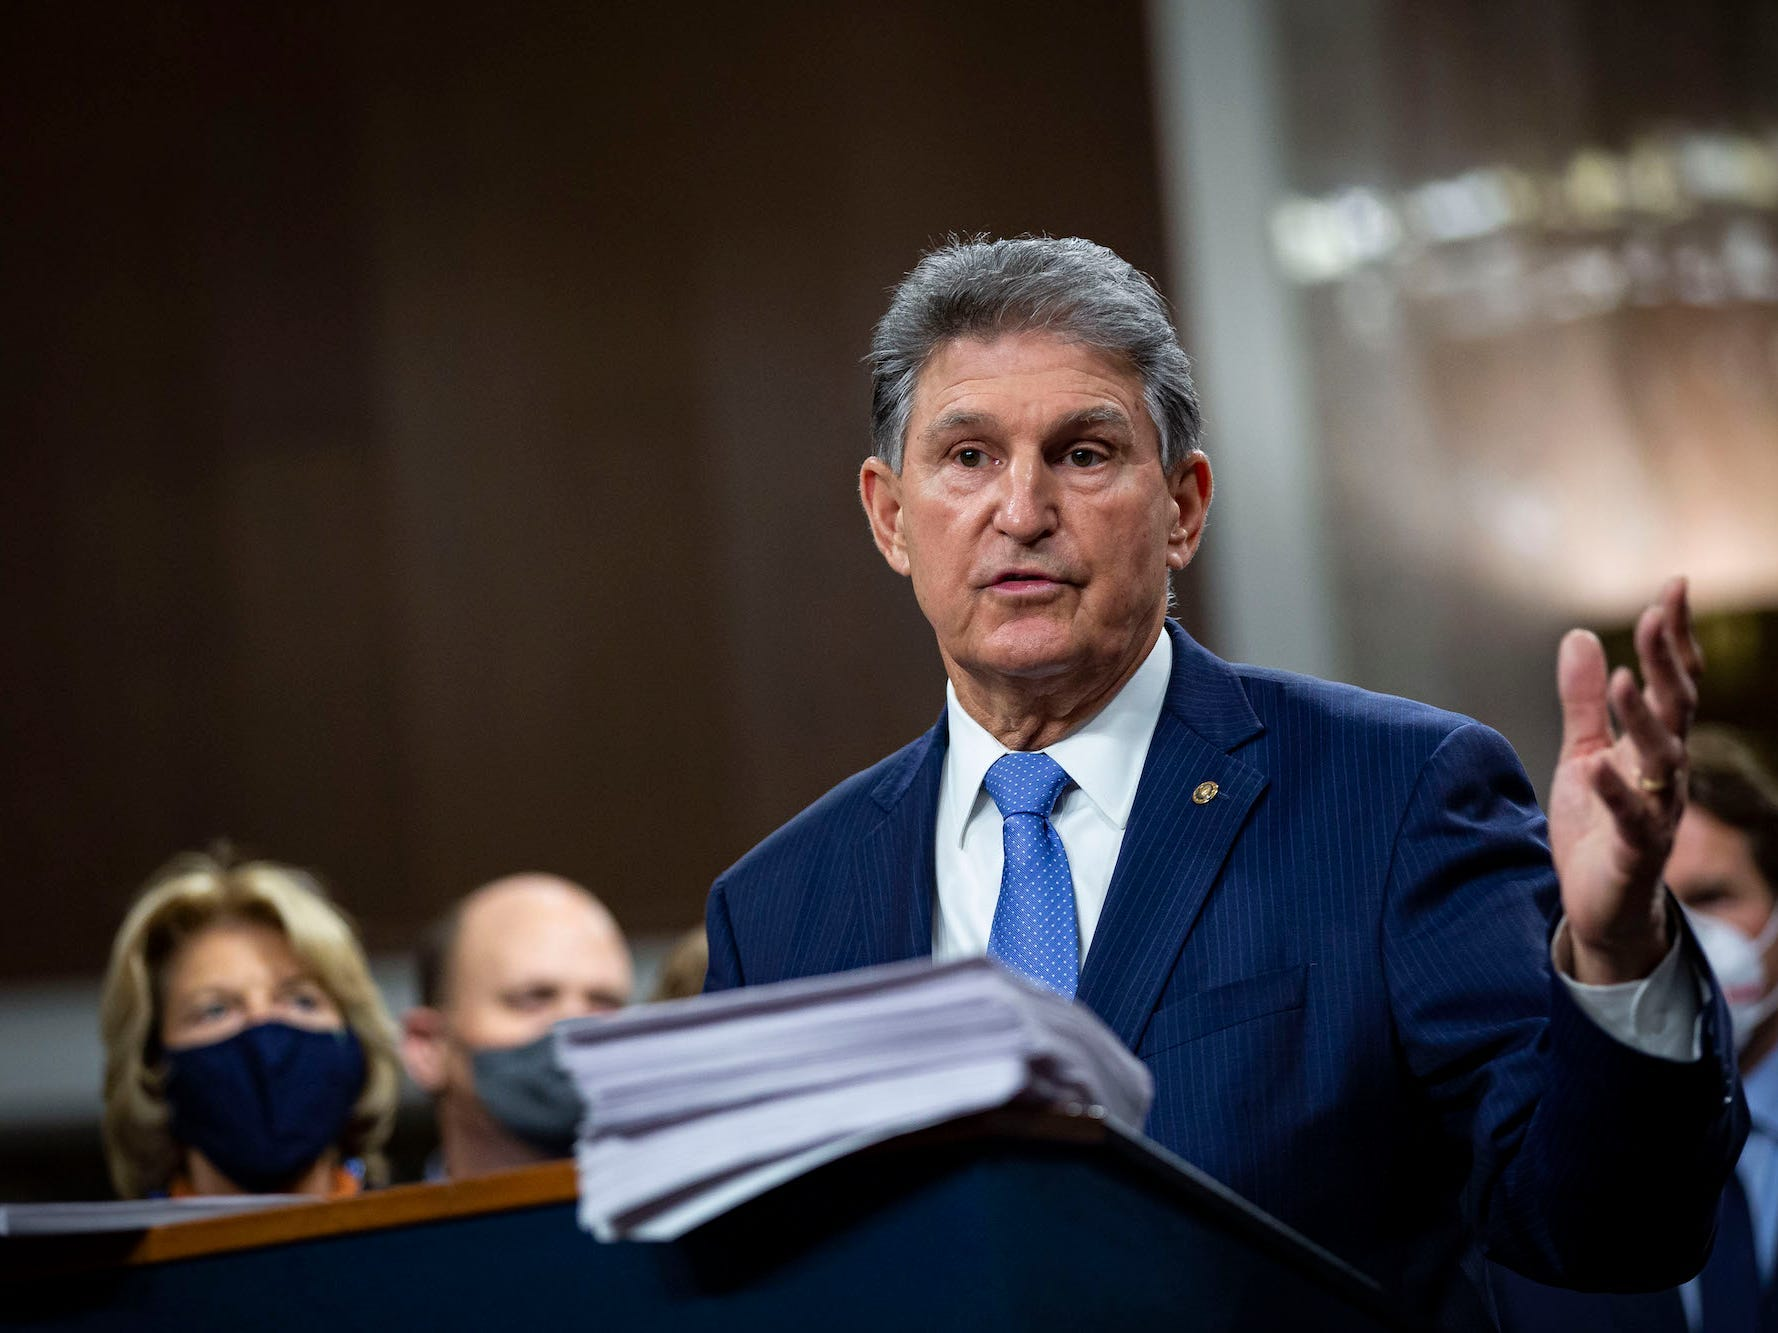 Joe Manchin poses a likelihood to raising the minimum wage, even supposing 250,000 West Virginians would take advantage of the amplify